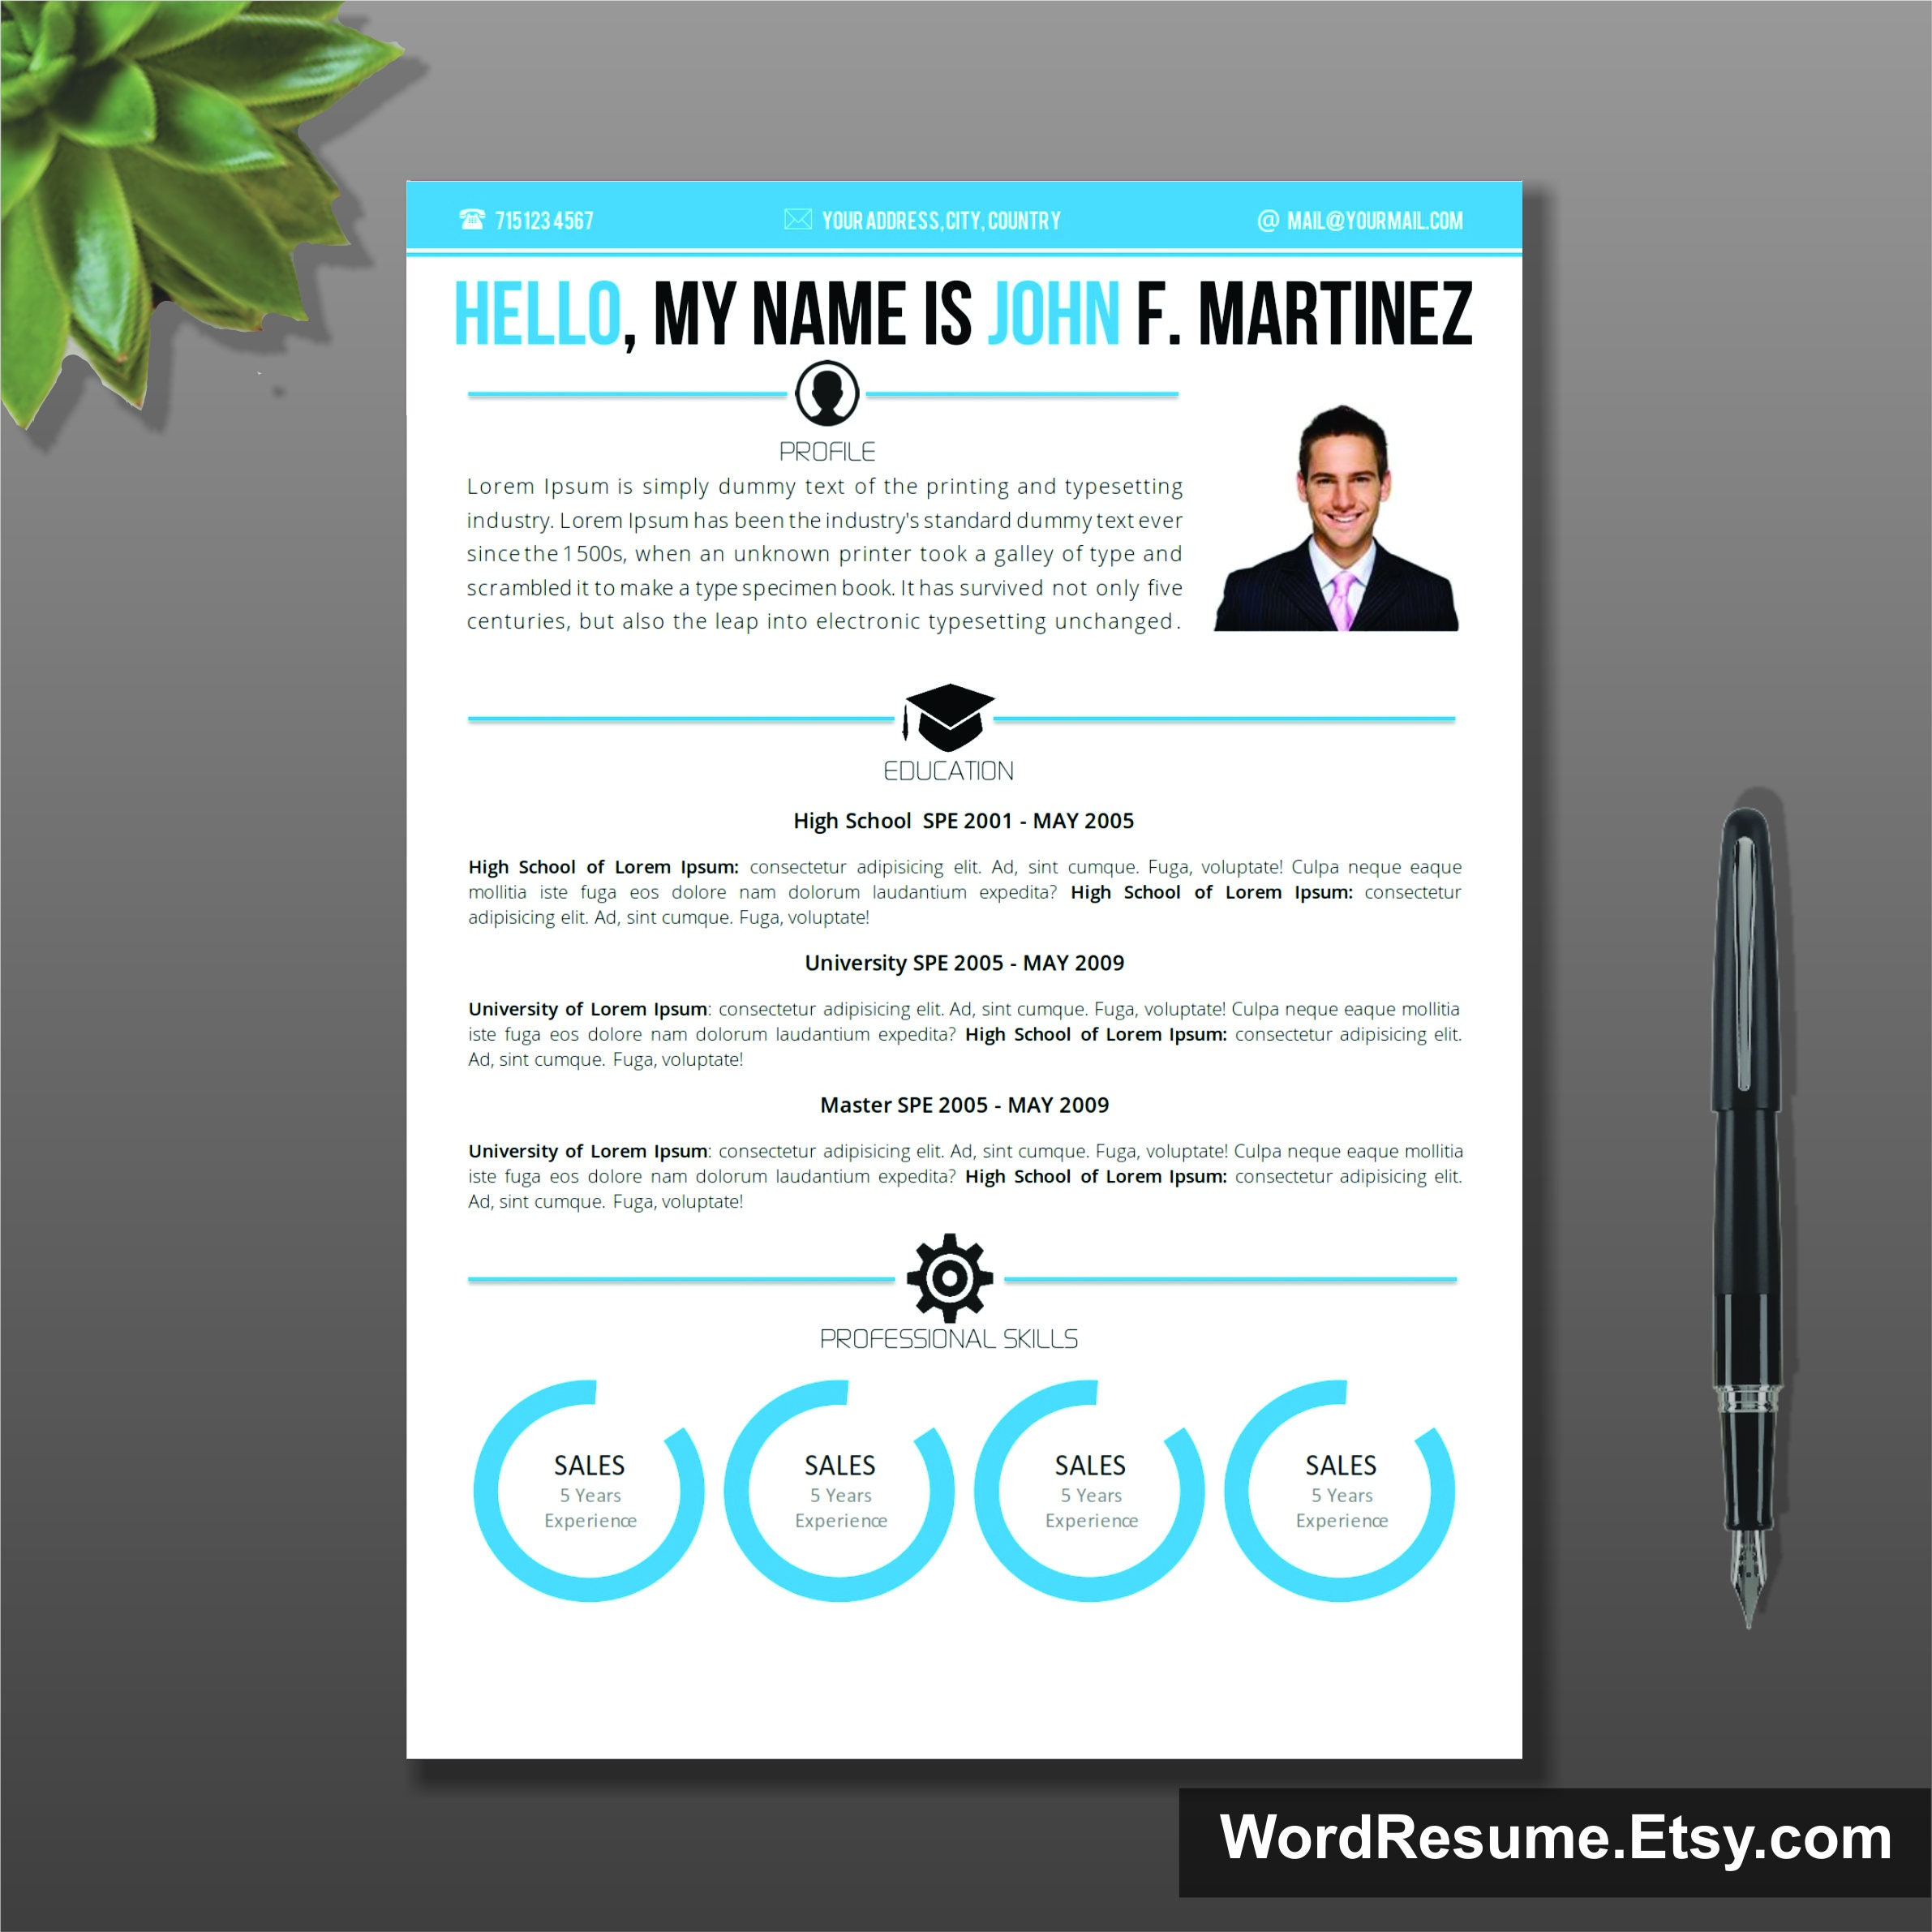 Microsoft Word Resume Template & Cover Letter CV Template